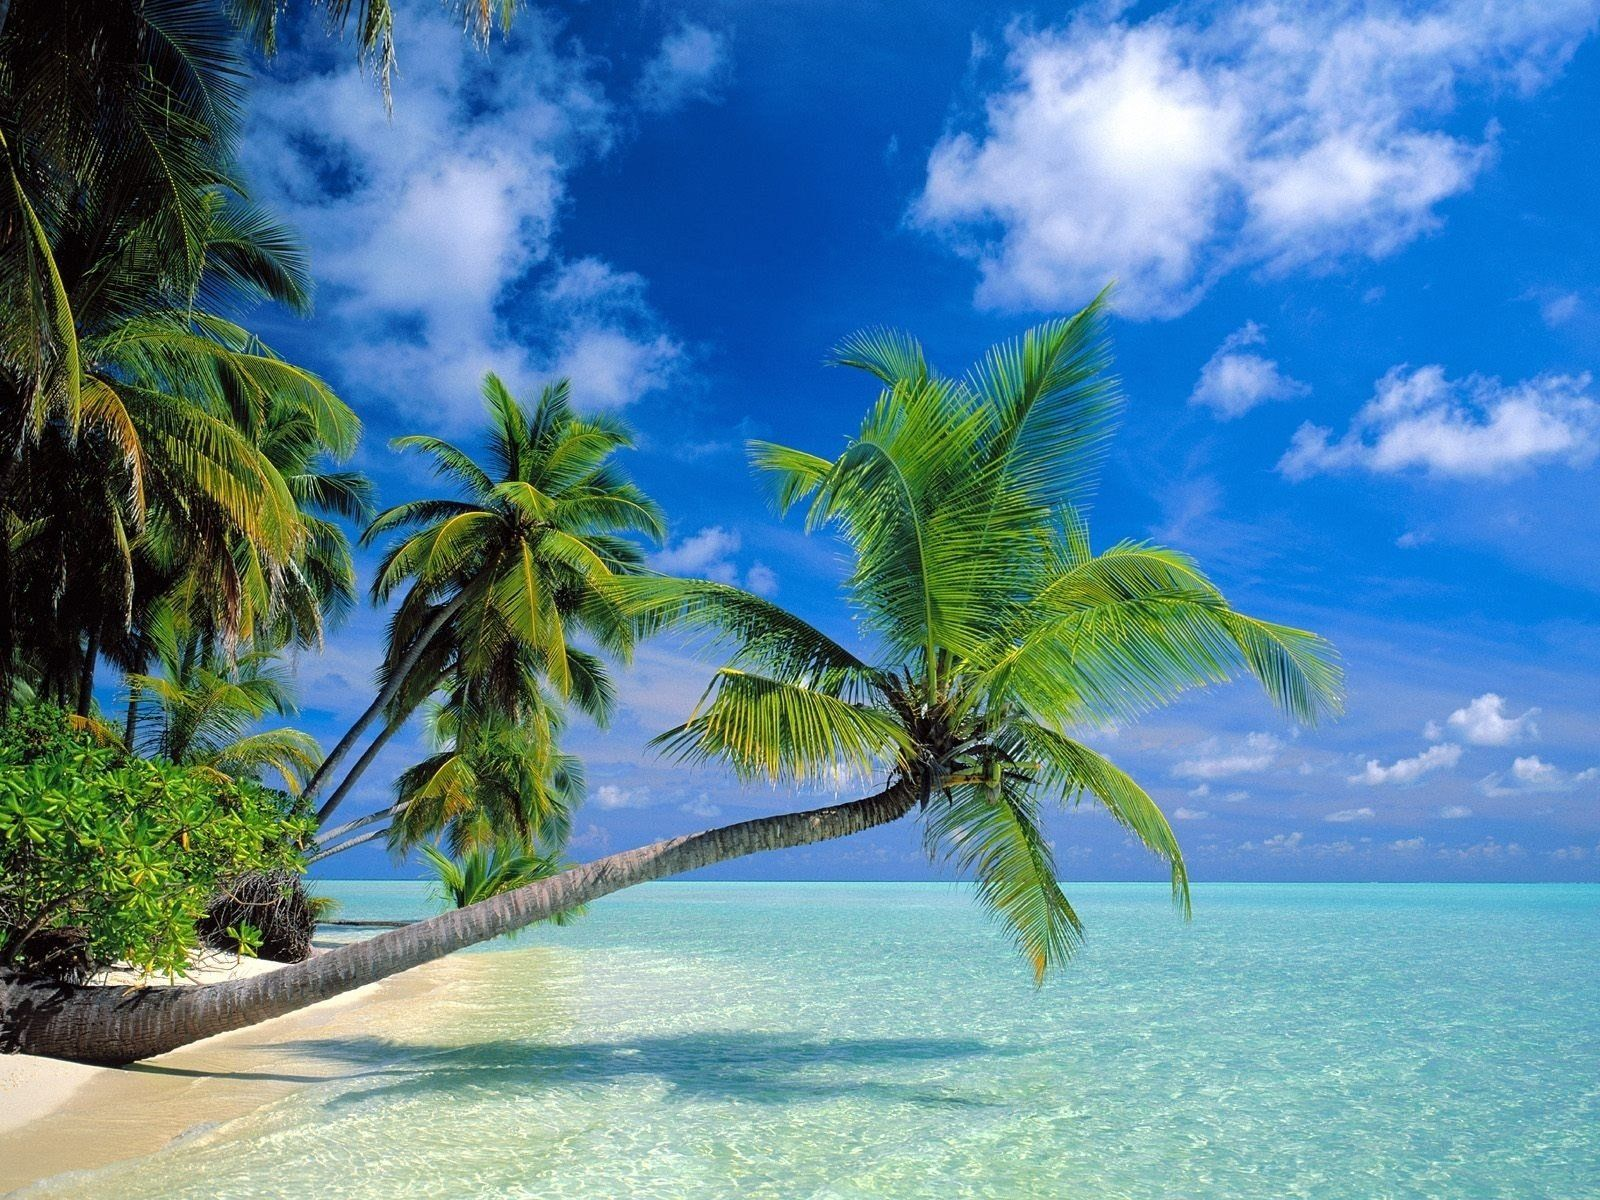 Beautiful Free Beach Wallpapers Wallpapers обои с пляжем